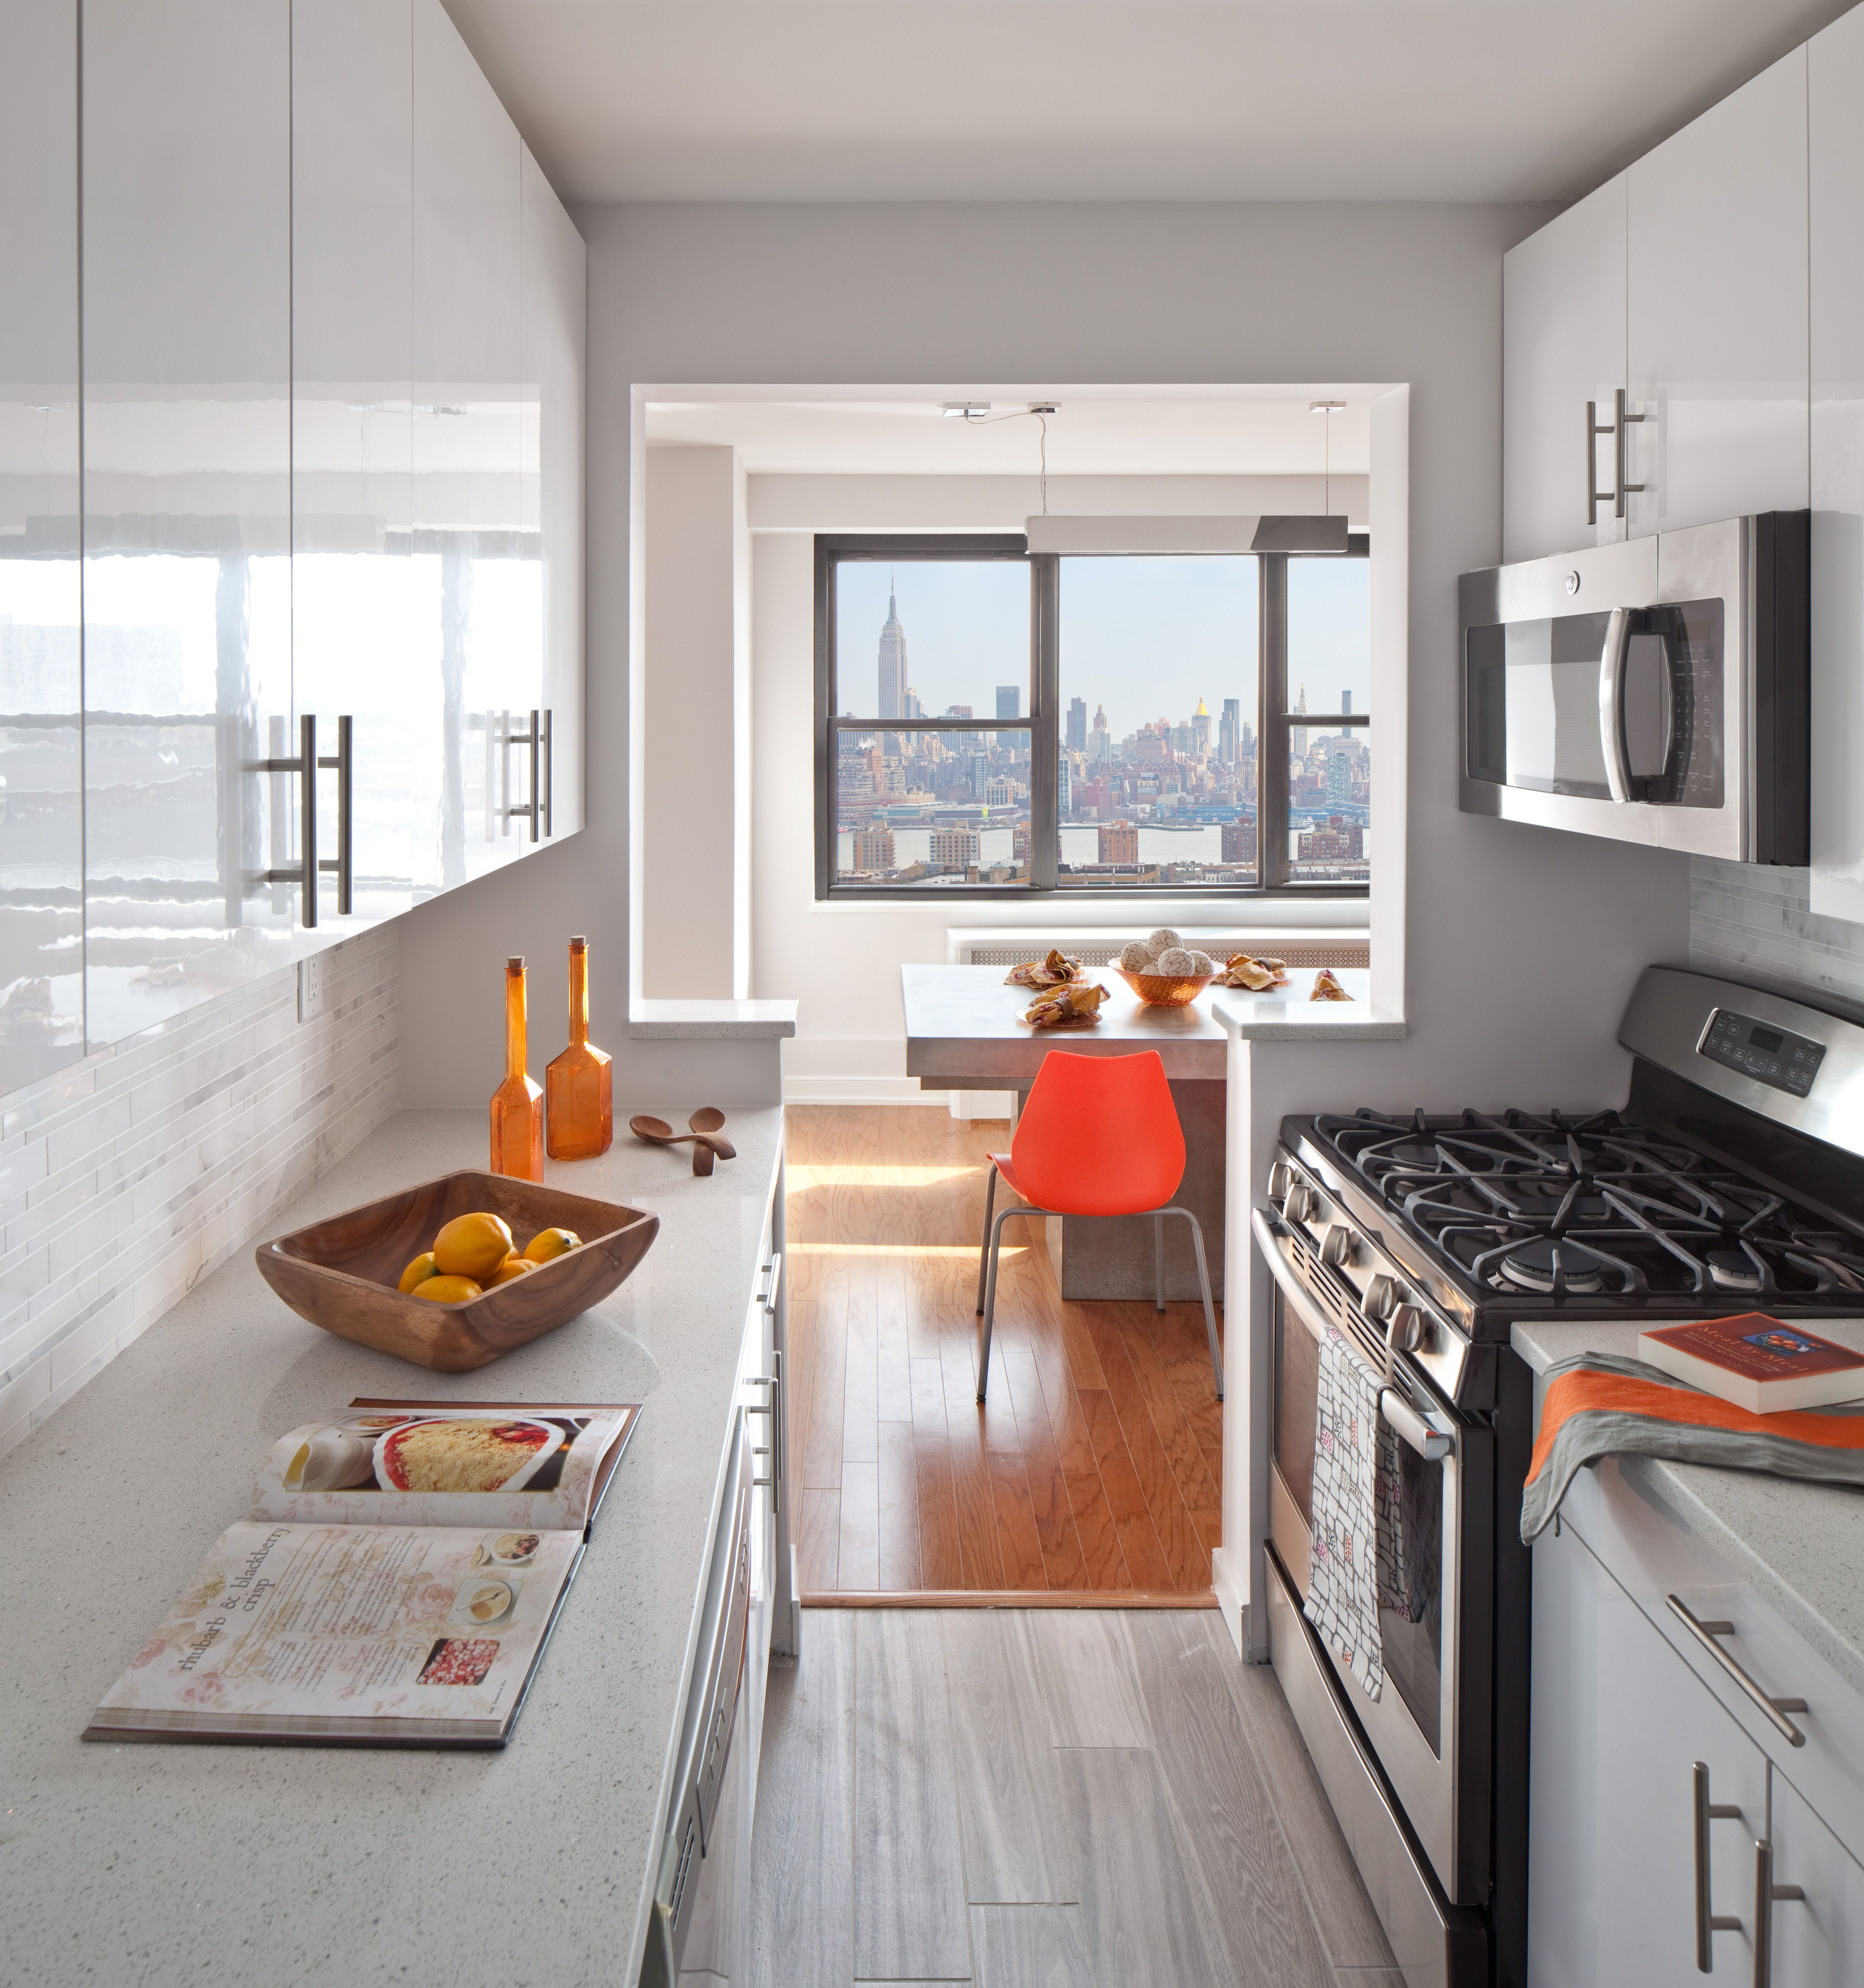 Apartments For Sale Hoboken: The Lenox Condominiums Union City, NJ In New Jersey